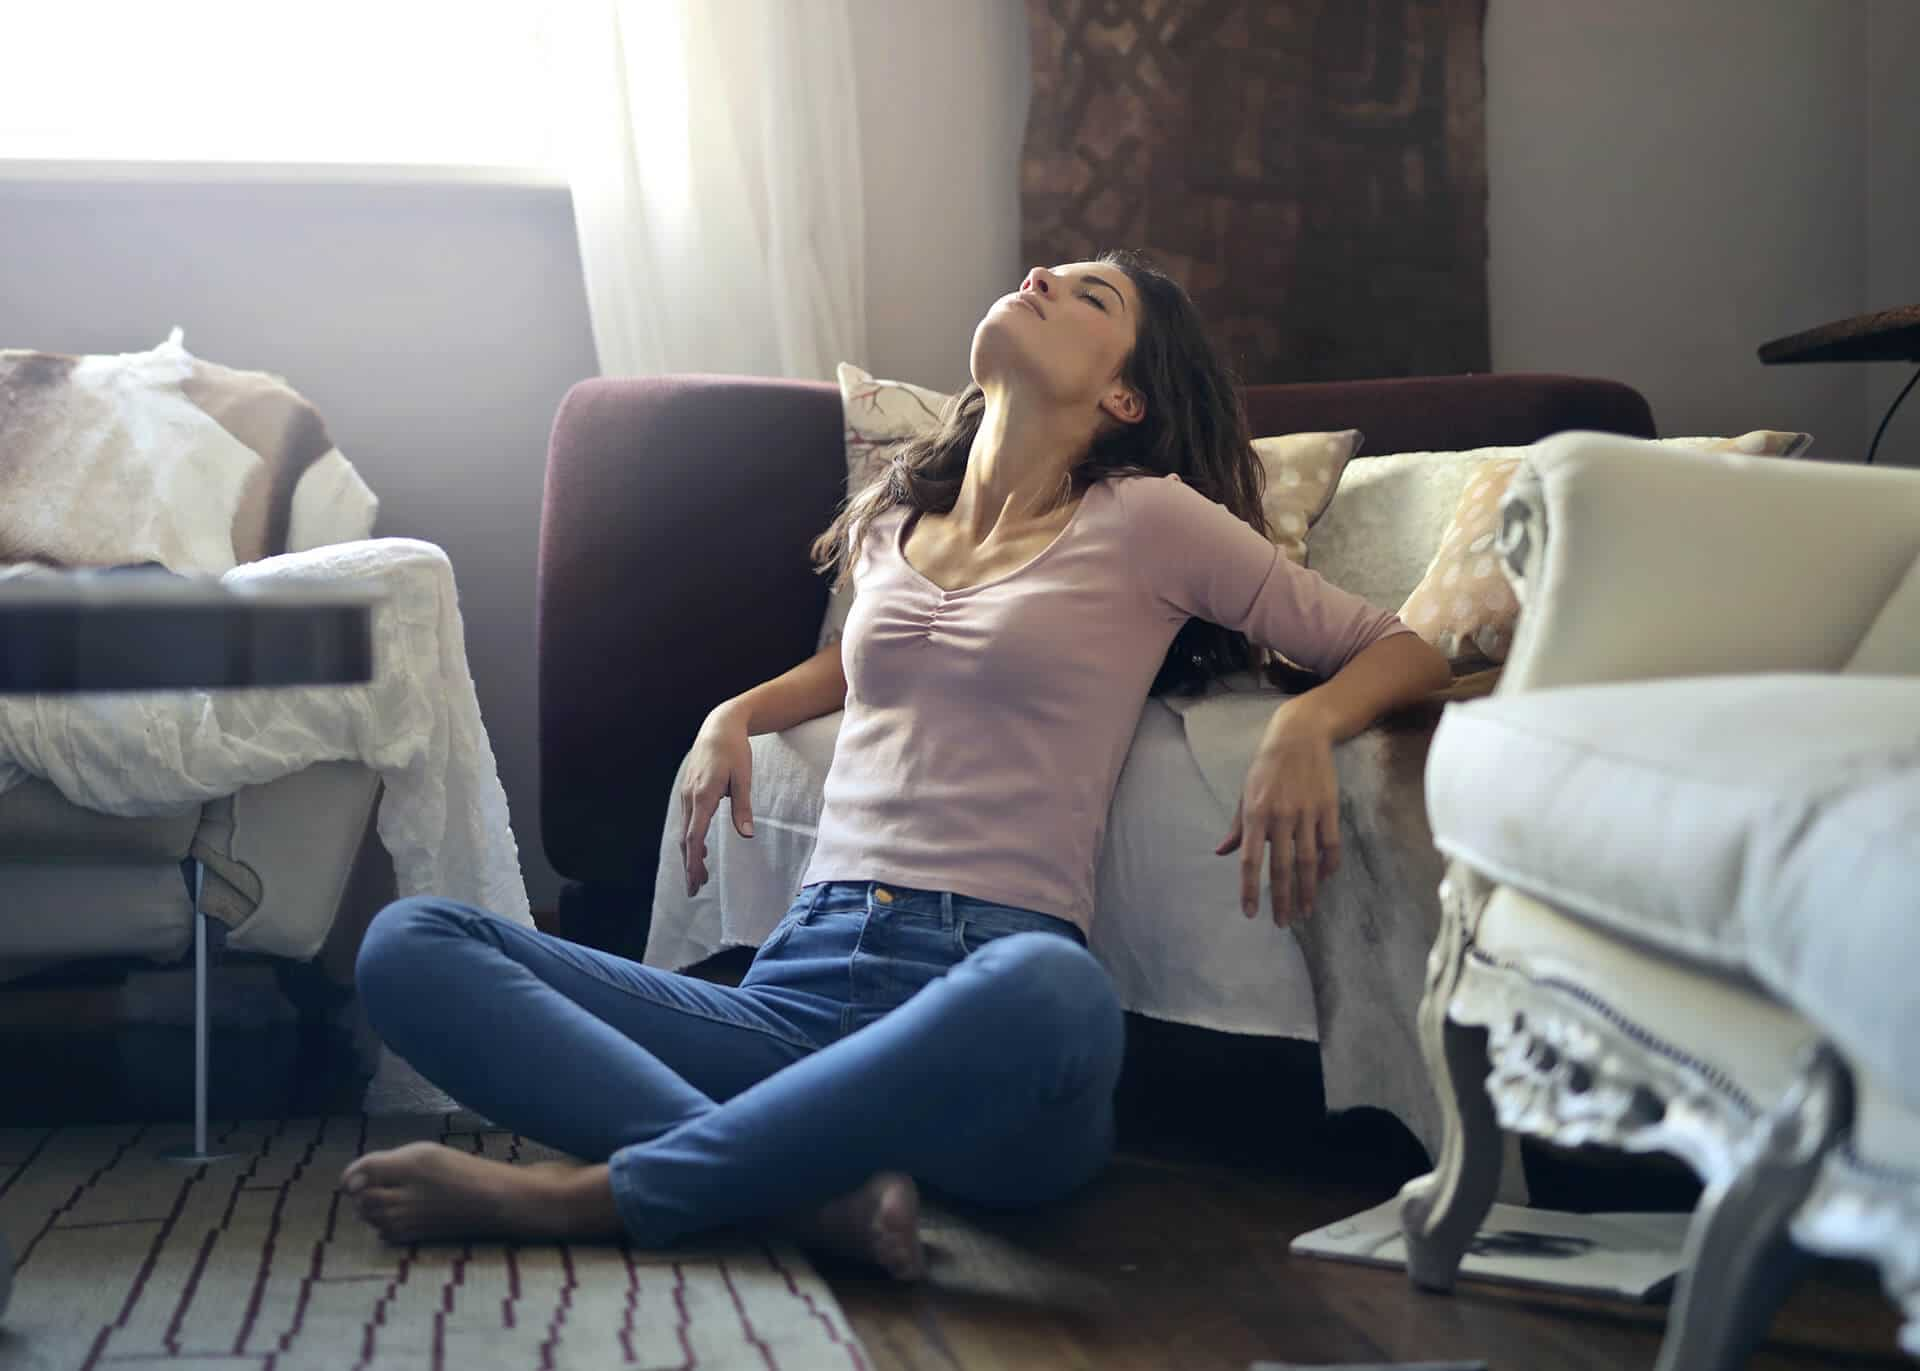 woman sitting on the floor with eyes closed